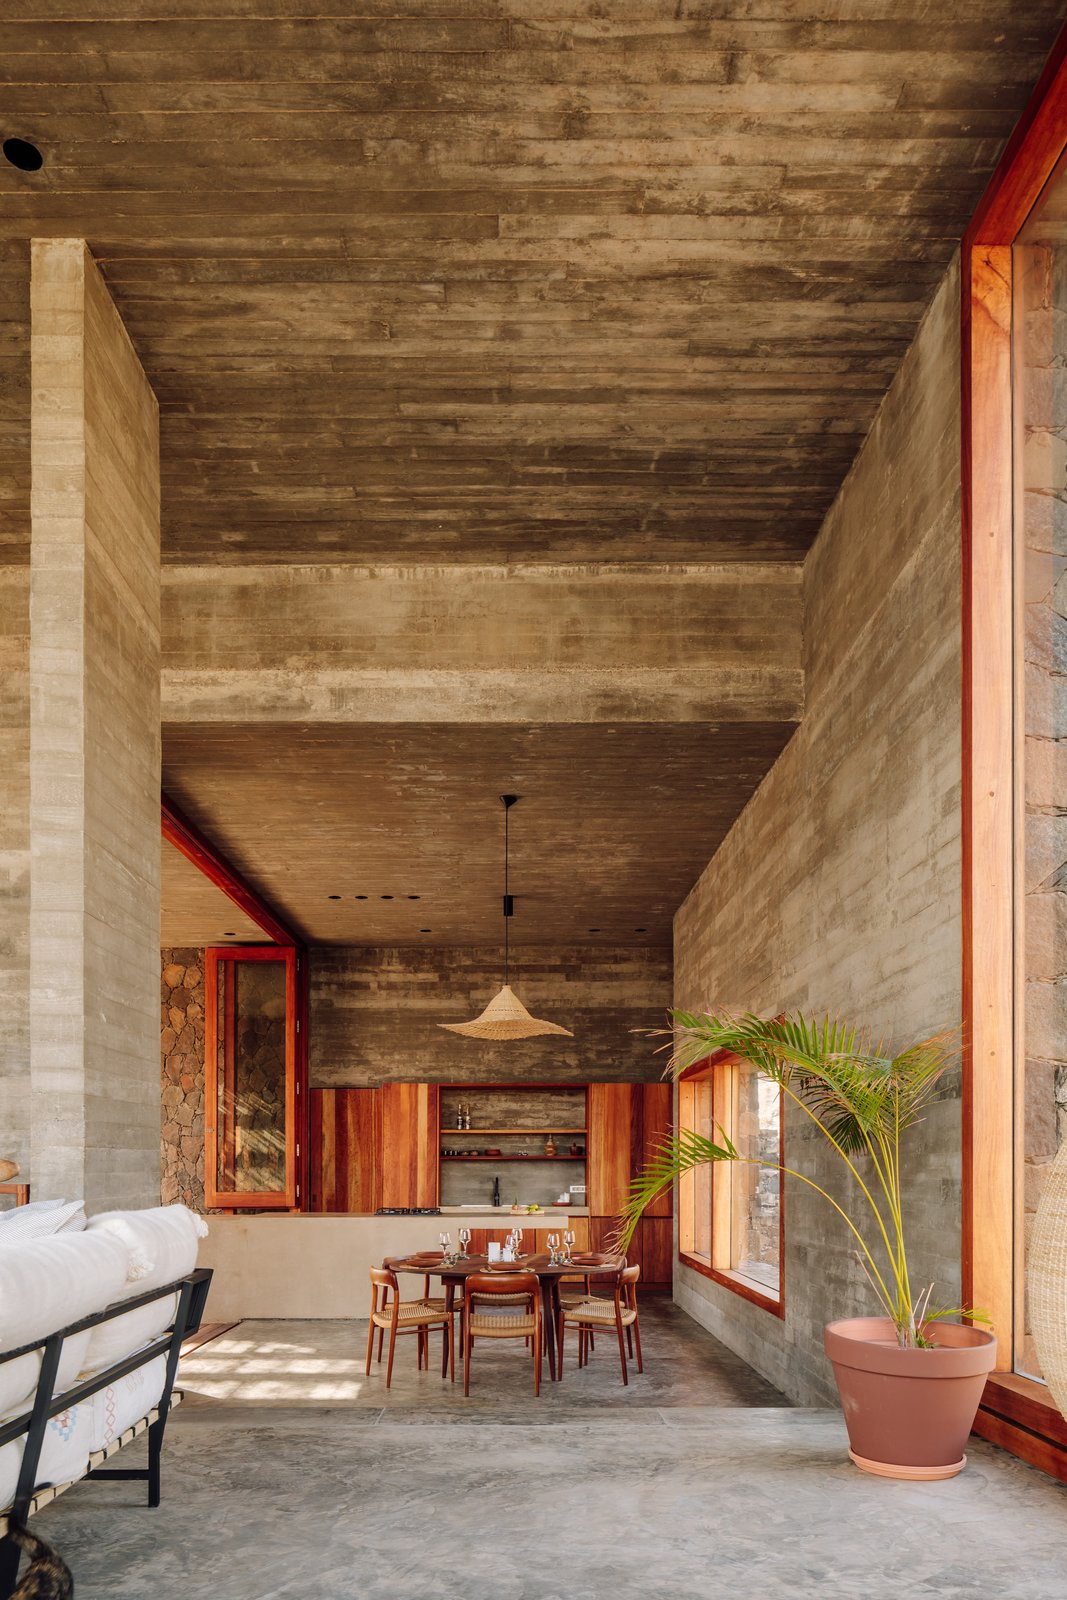 The Esculturas POLO Architects Cabo Verde dining room